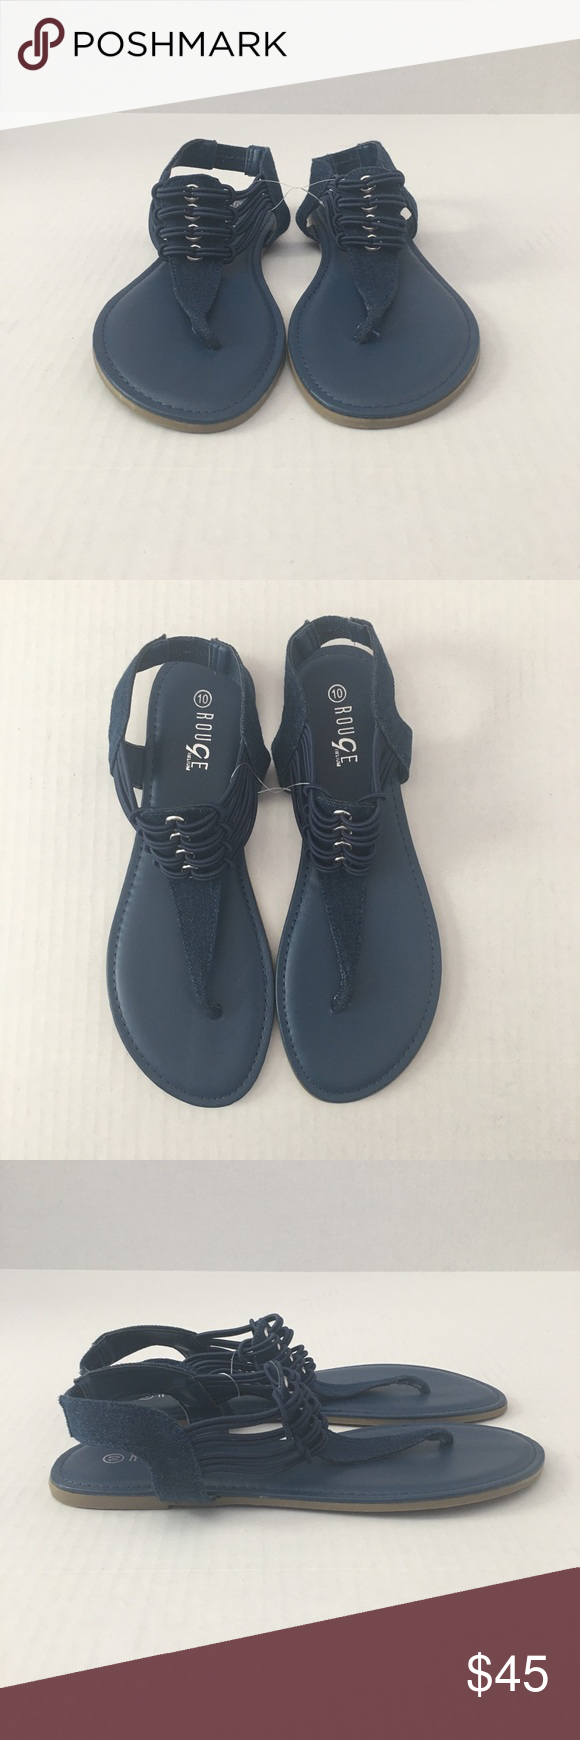 14e403f76b7f New Navy Blue Rouge Helium Sandals Navy Blue Sandals with Denim Strap Rouge  Helium Shoes